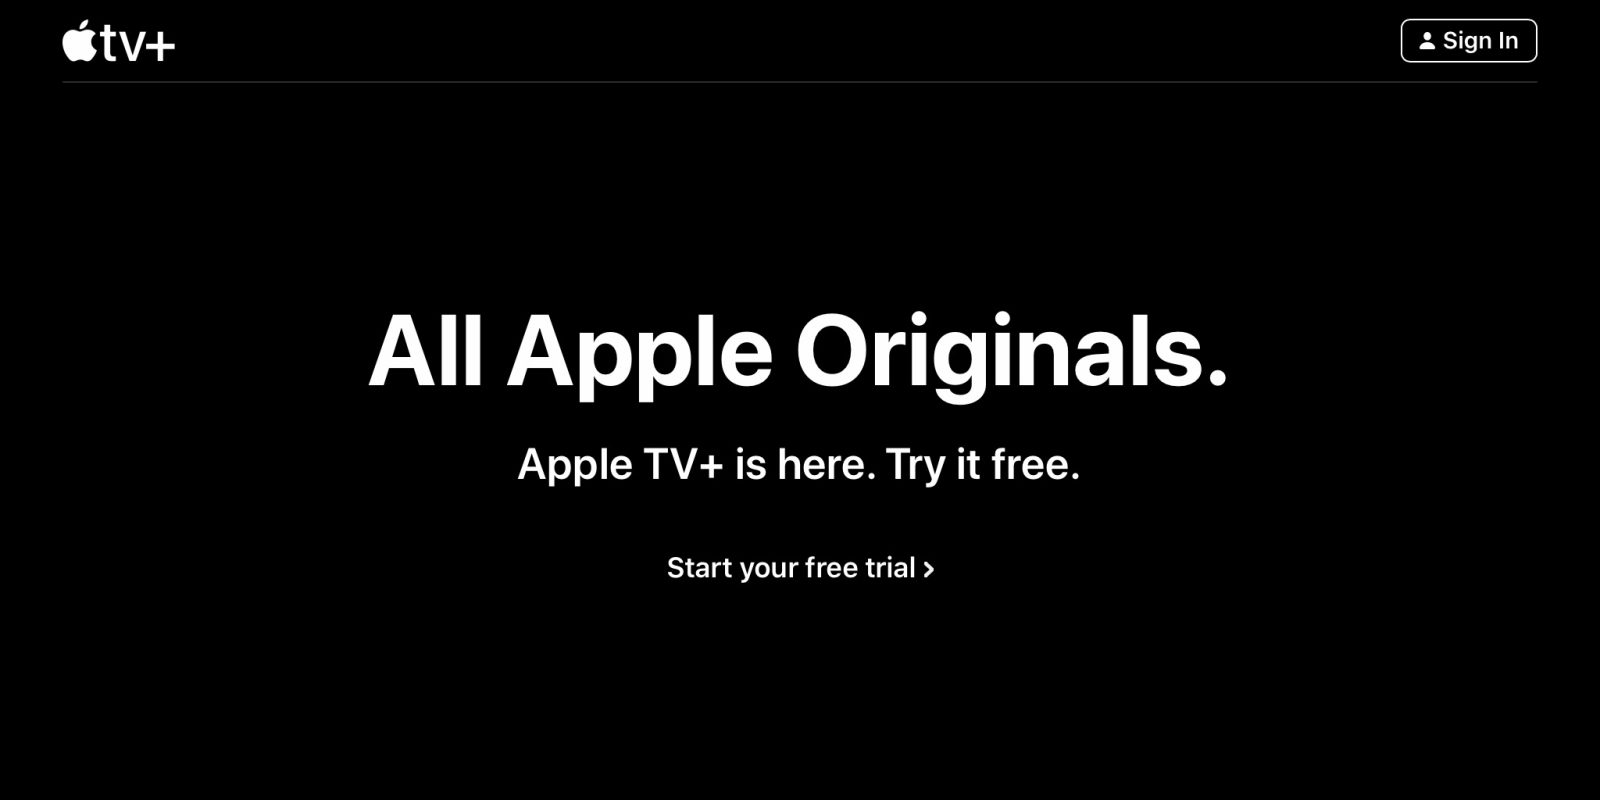 Upcoming Apple Podcasts expansion into original content will include companion content for TV+